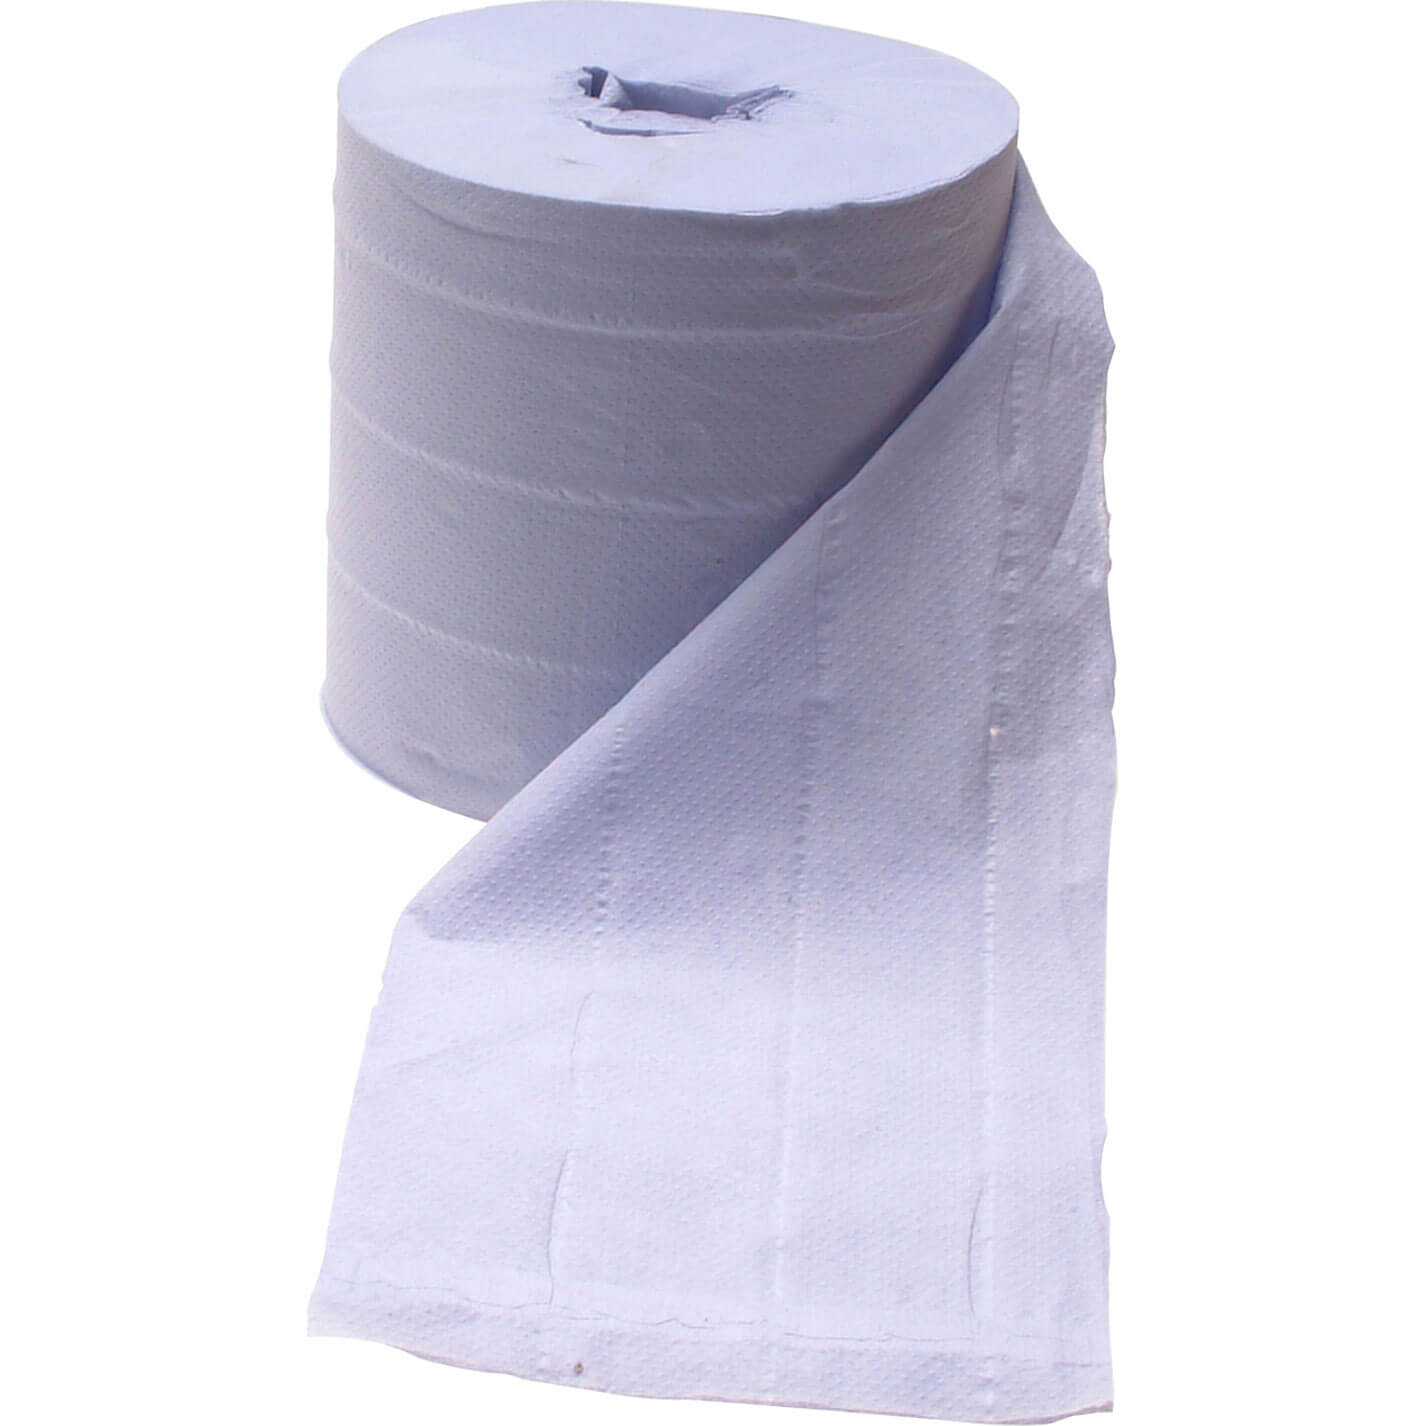 Image of Scan Paper Towel Wiping Roll